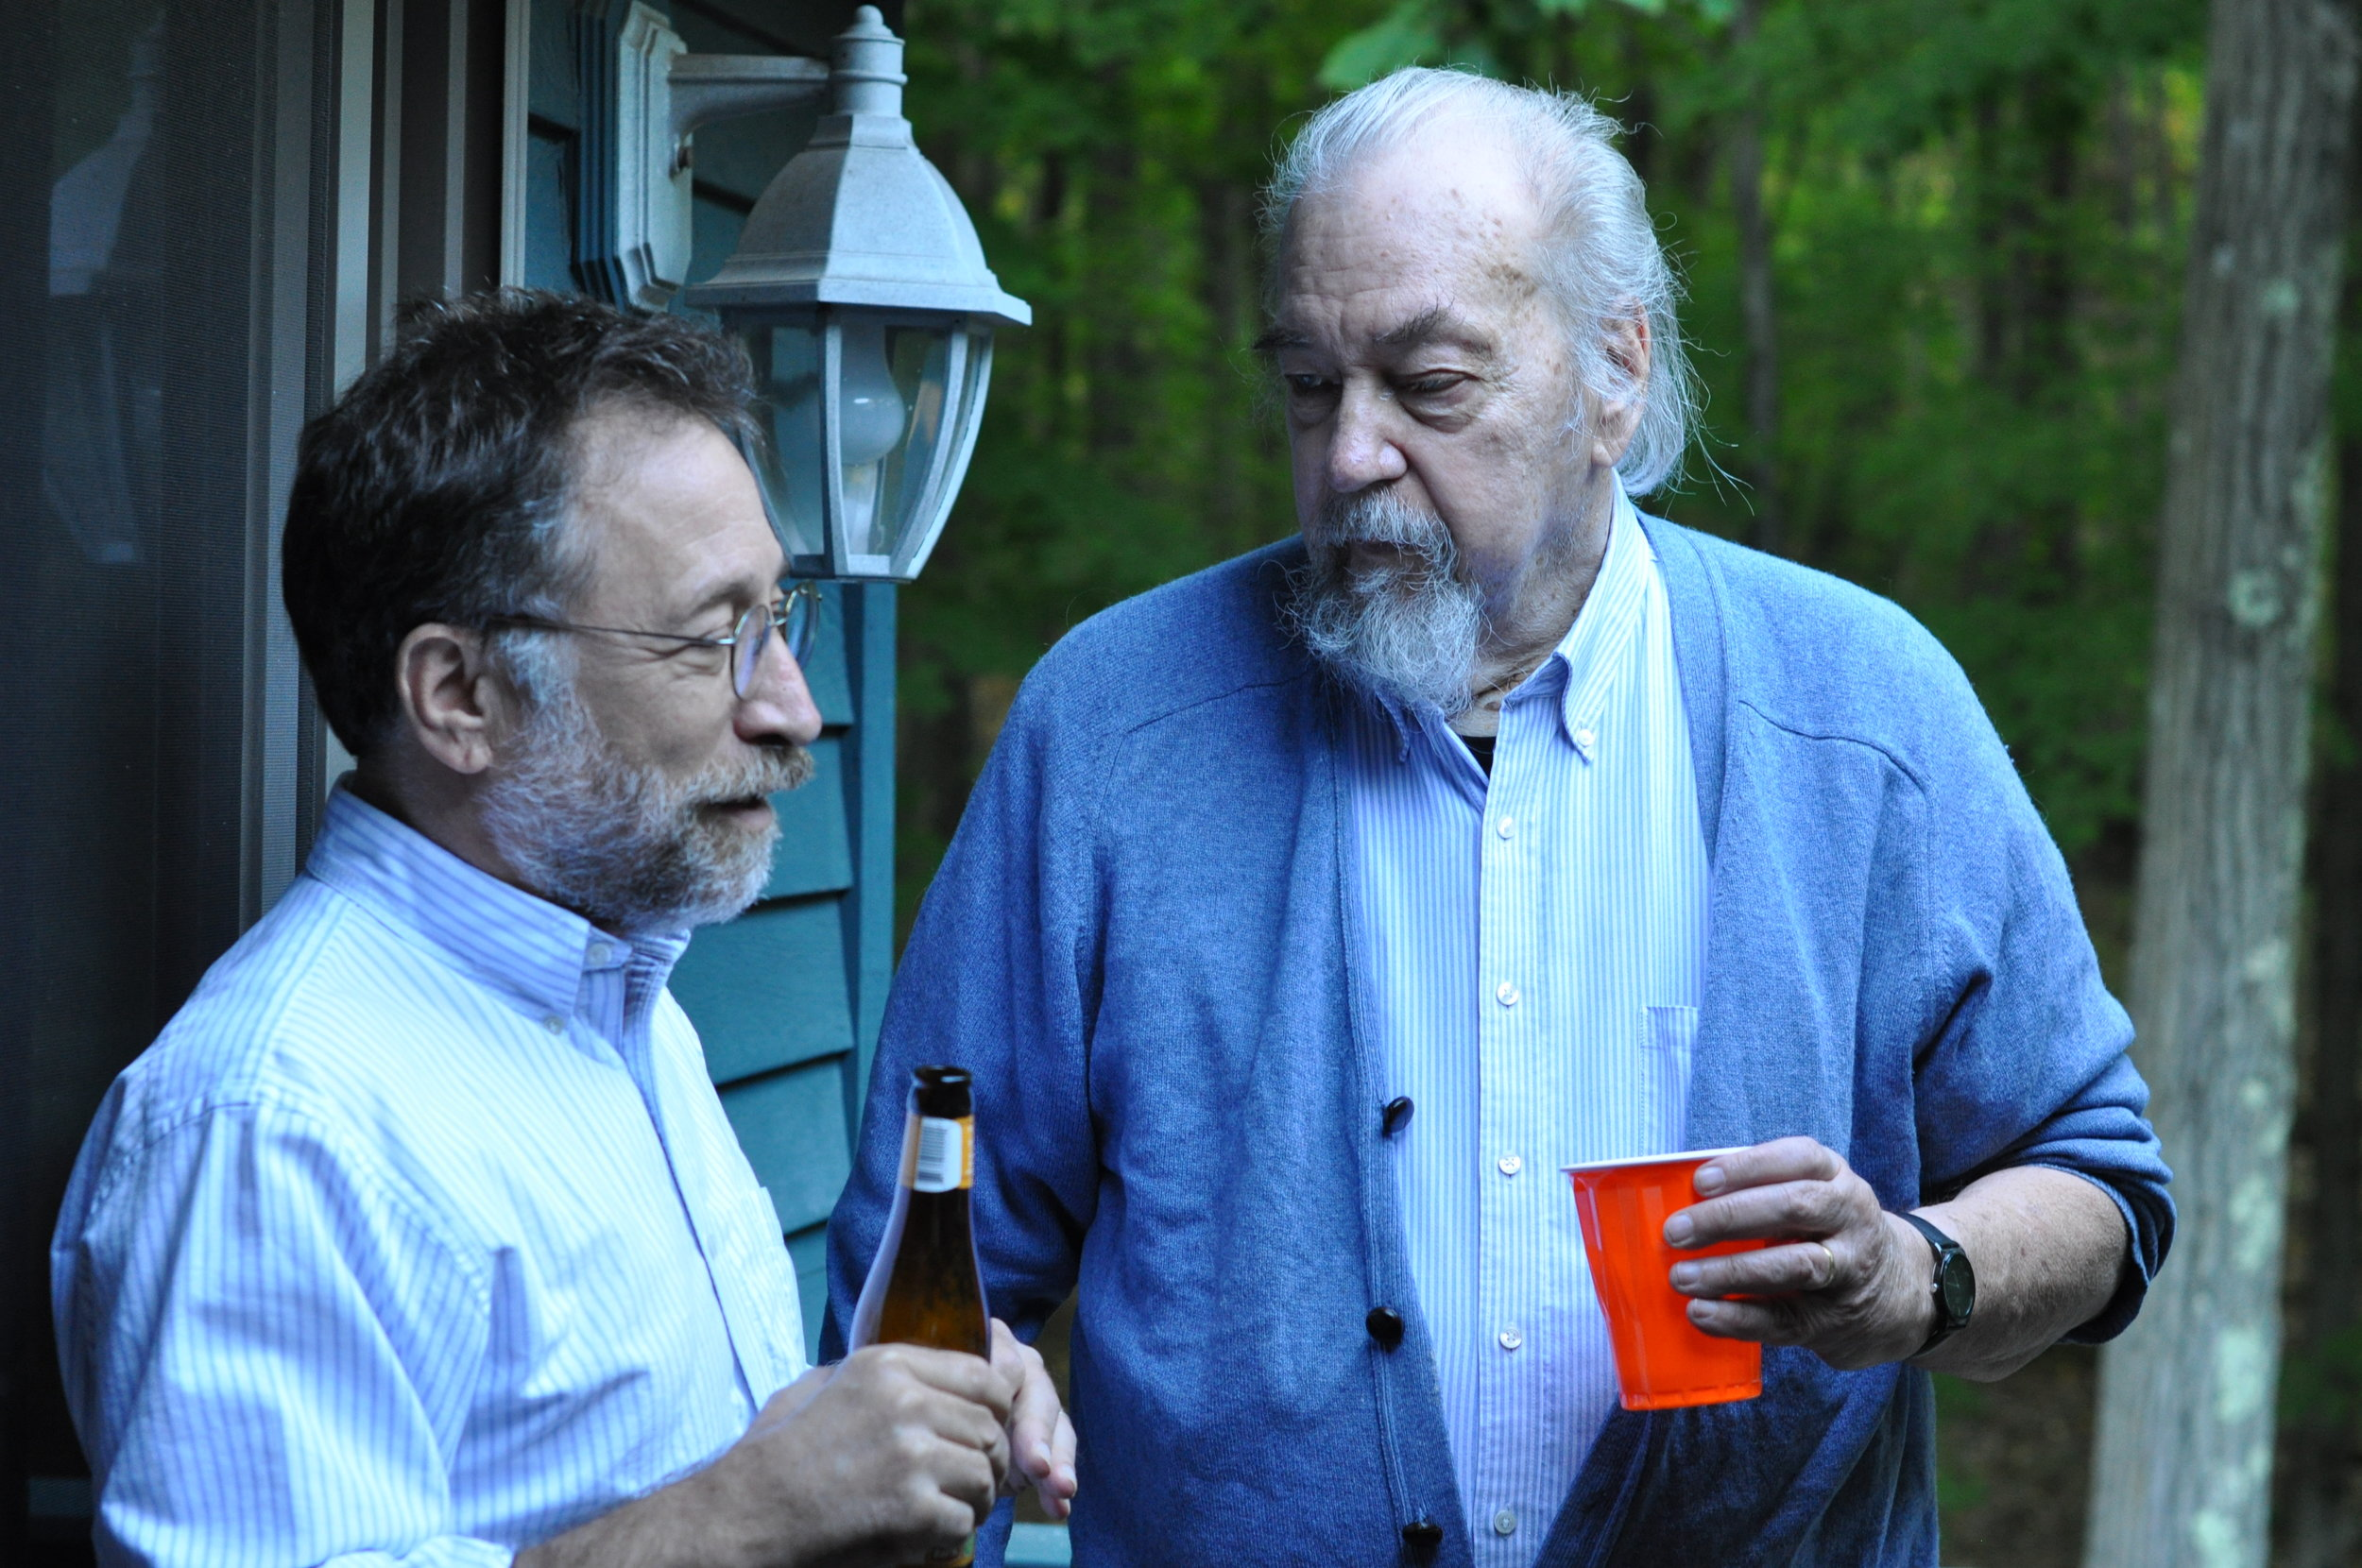 Dick Allen (right) chats with fellow Connecticut author David Leff at Nomad's End.